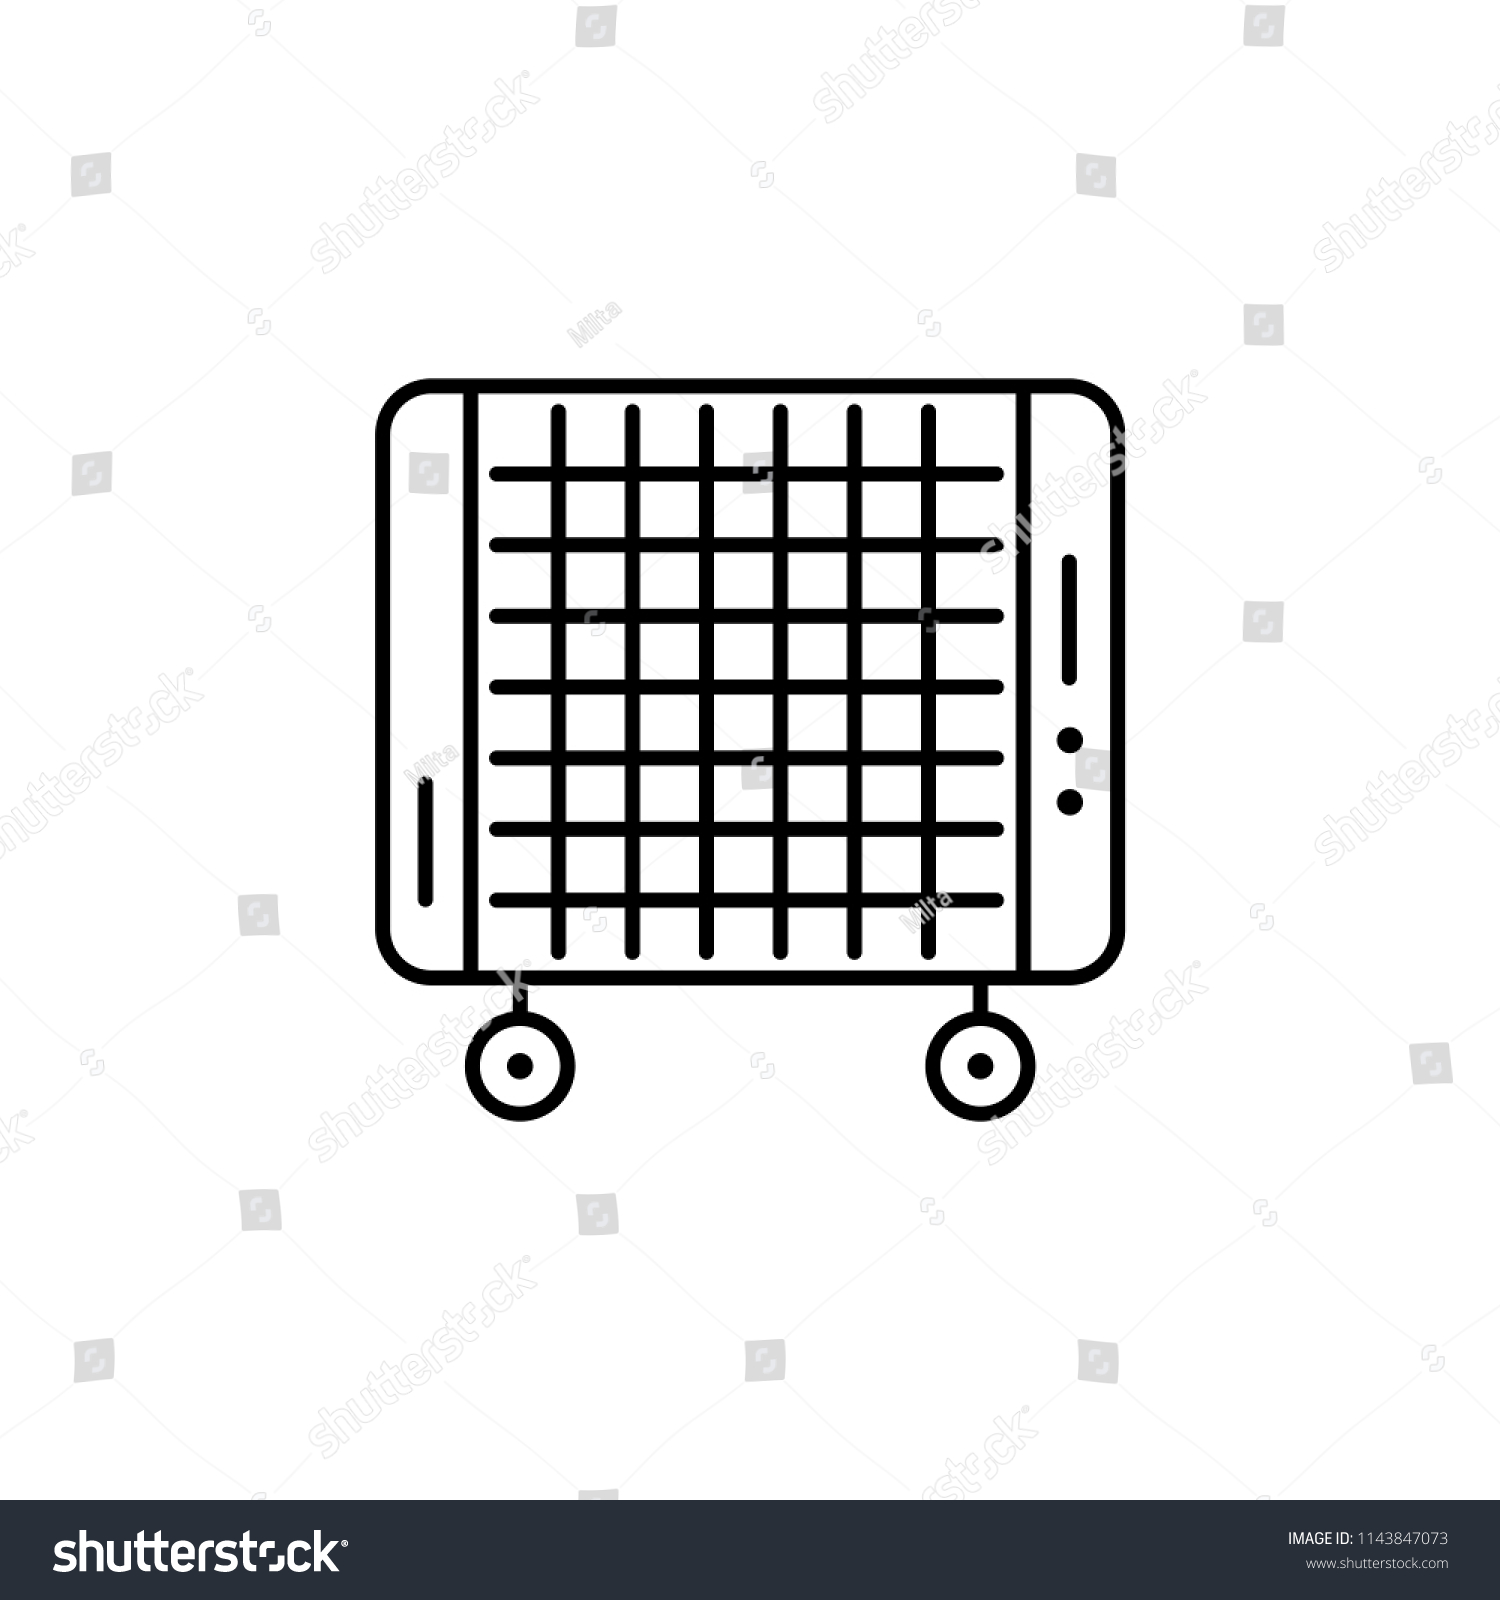 Vector illustration of portable micathermic heater. Line icon. Isolated  object on white background.